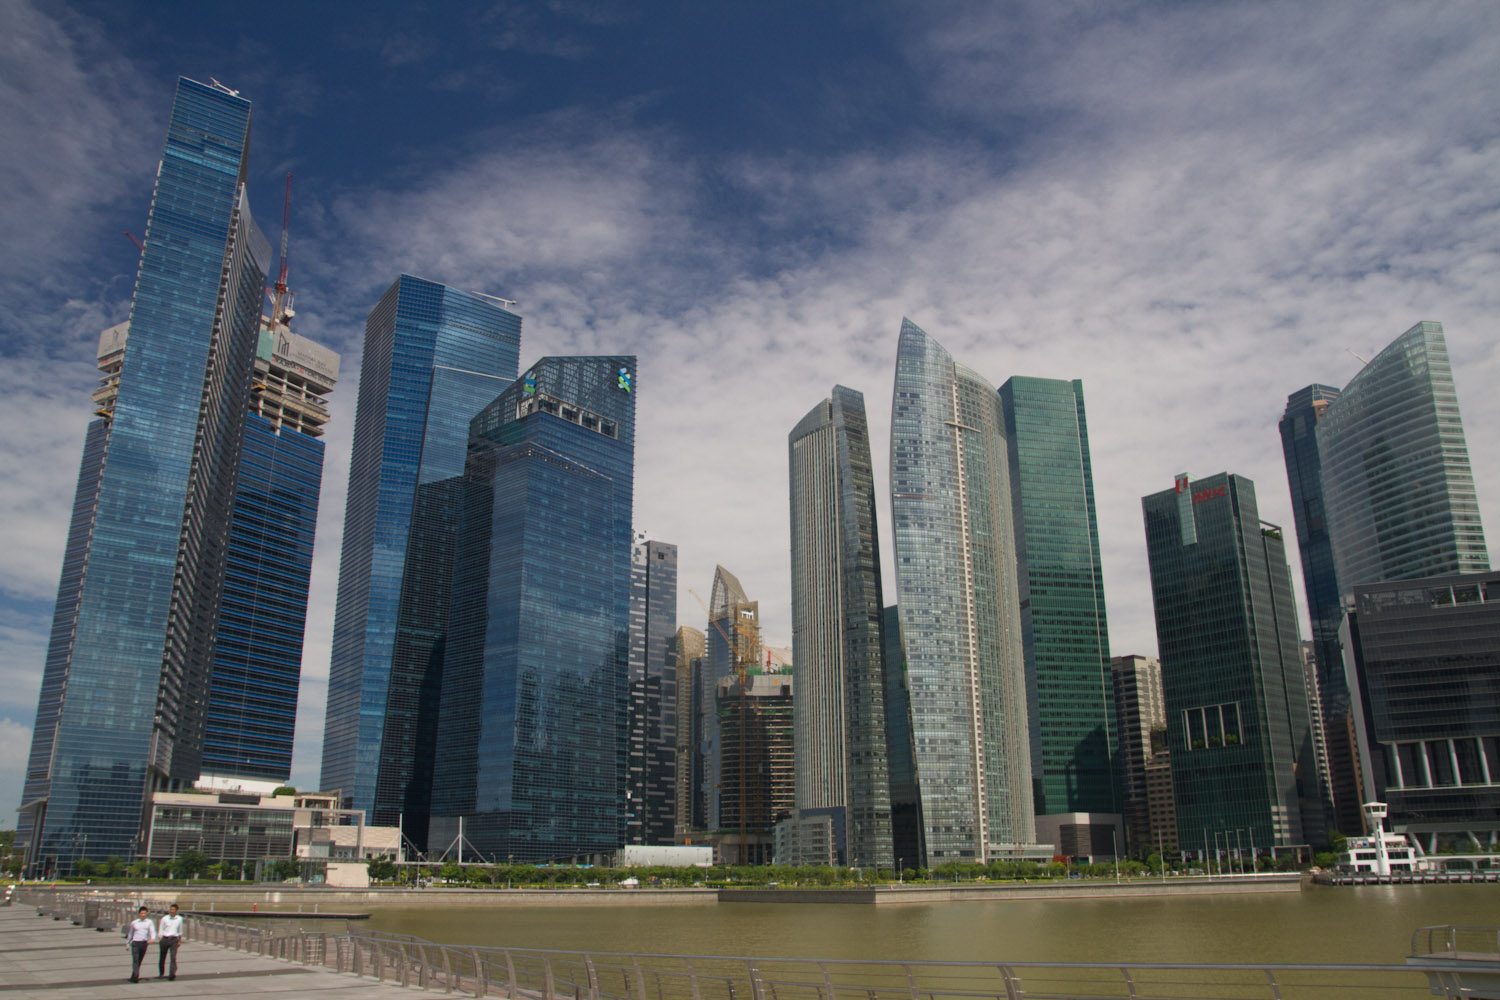 El Central Business District (CBD) de Singapur